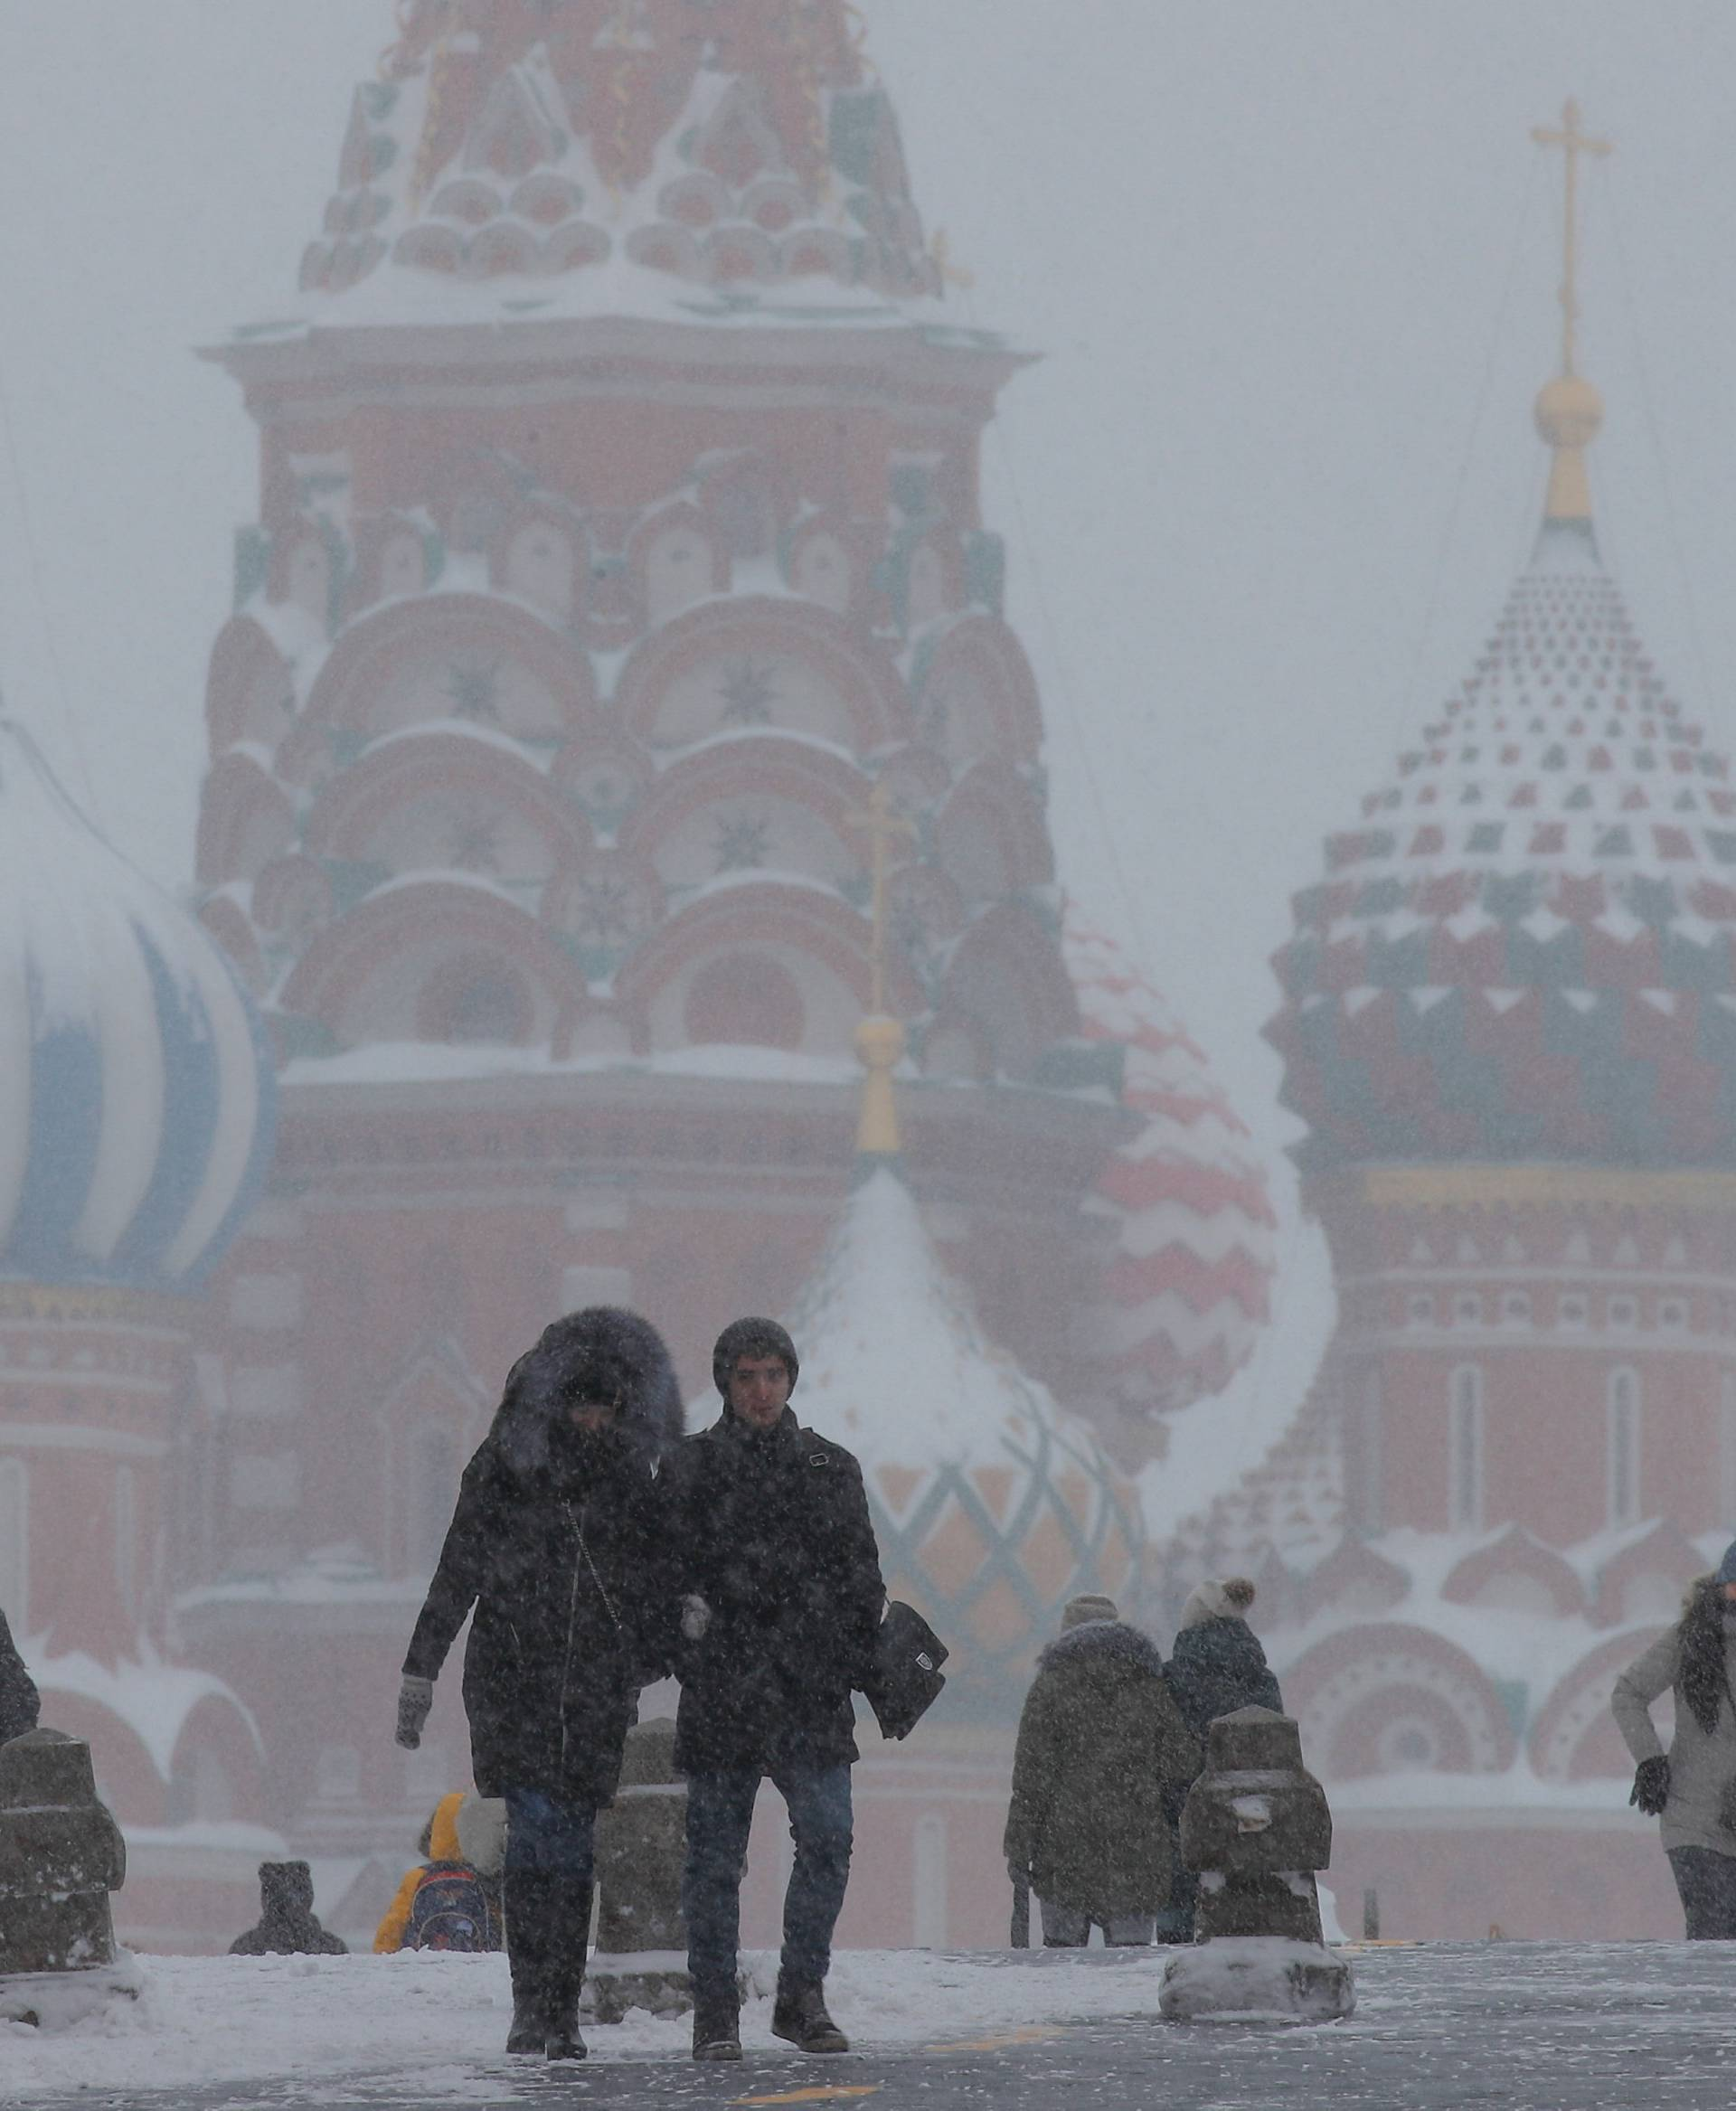 People walk in the Red Square during heavy snowfall in Moscow